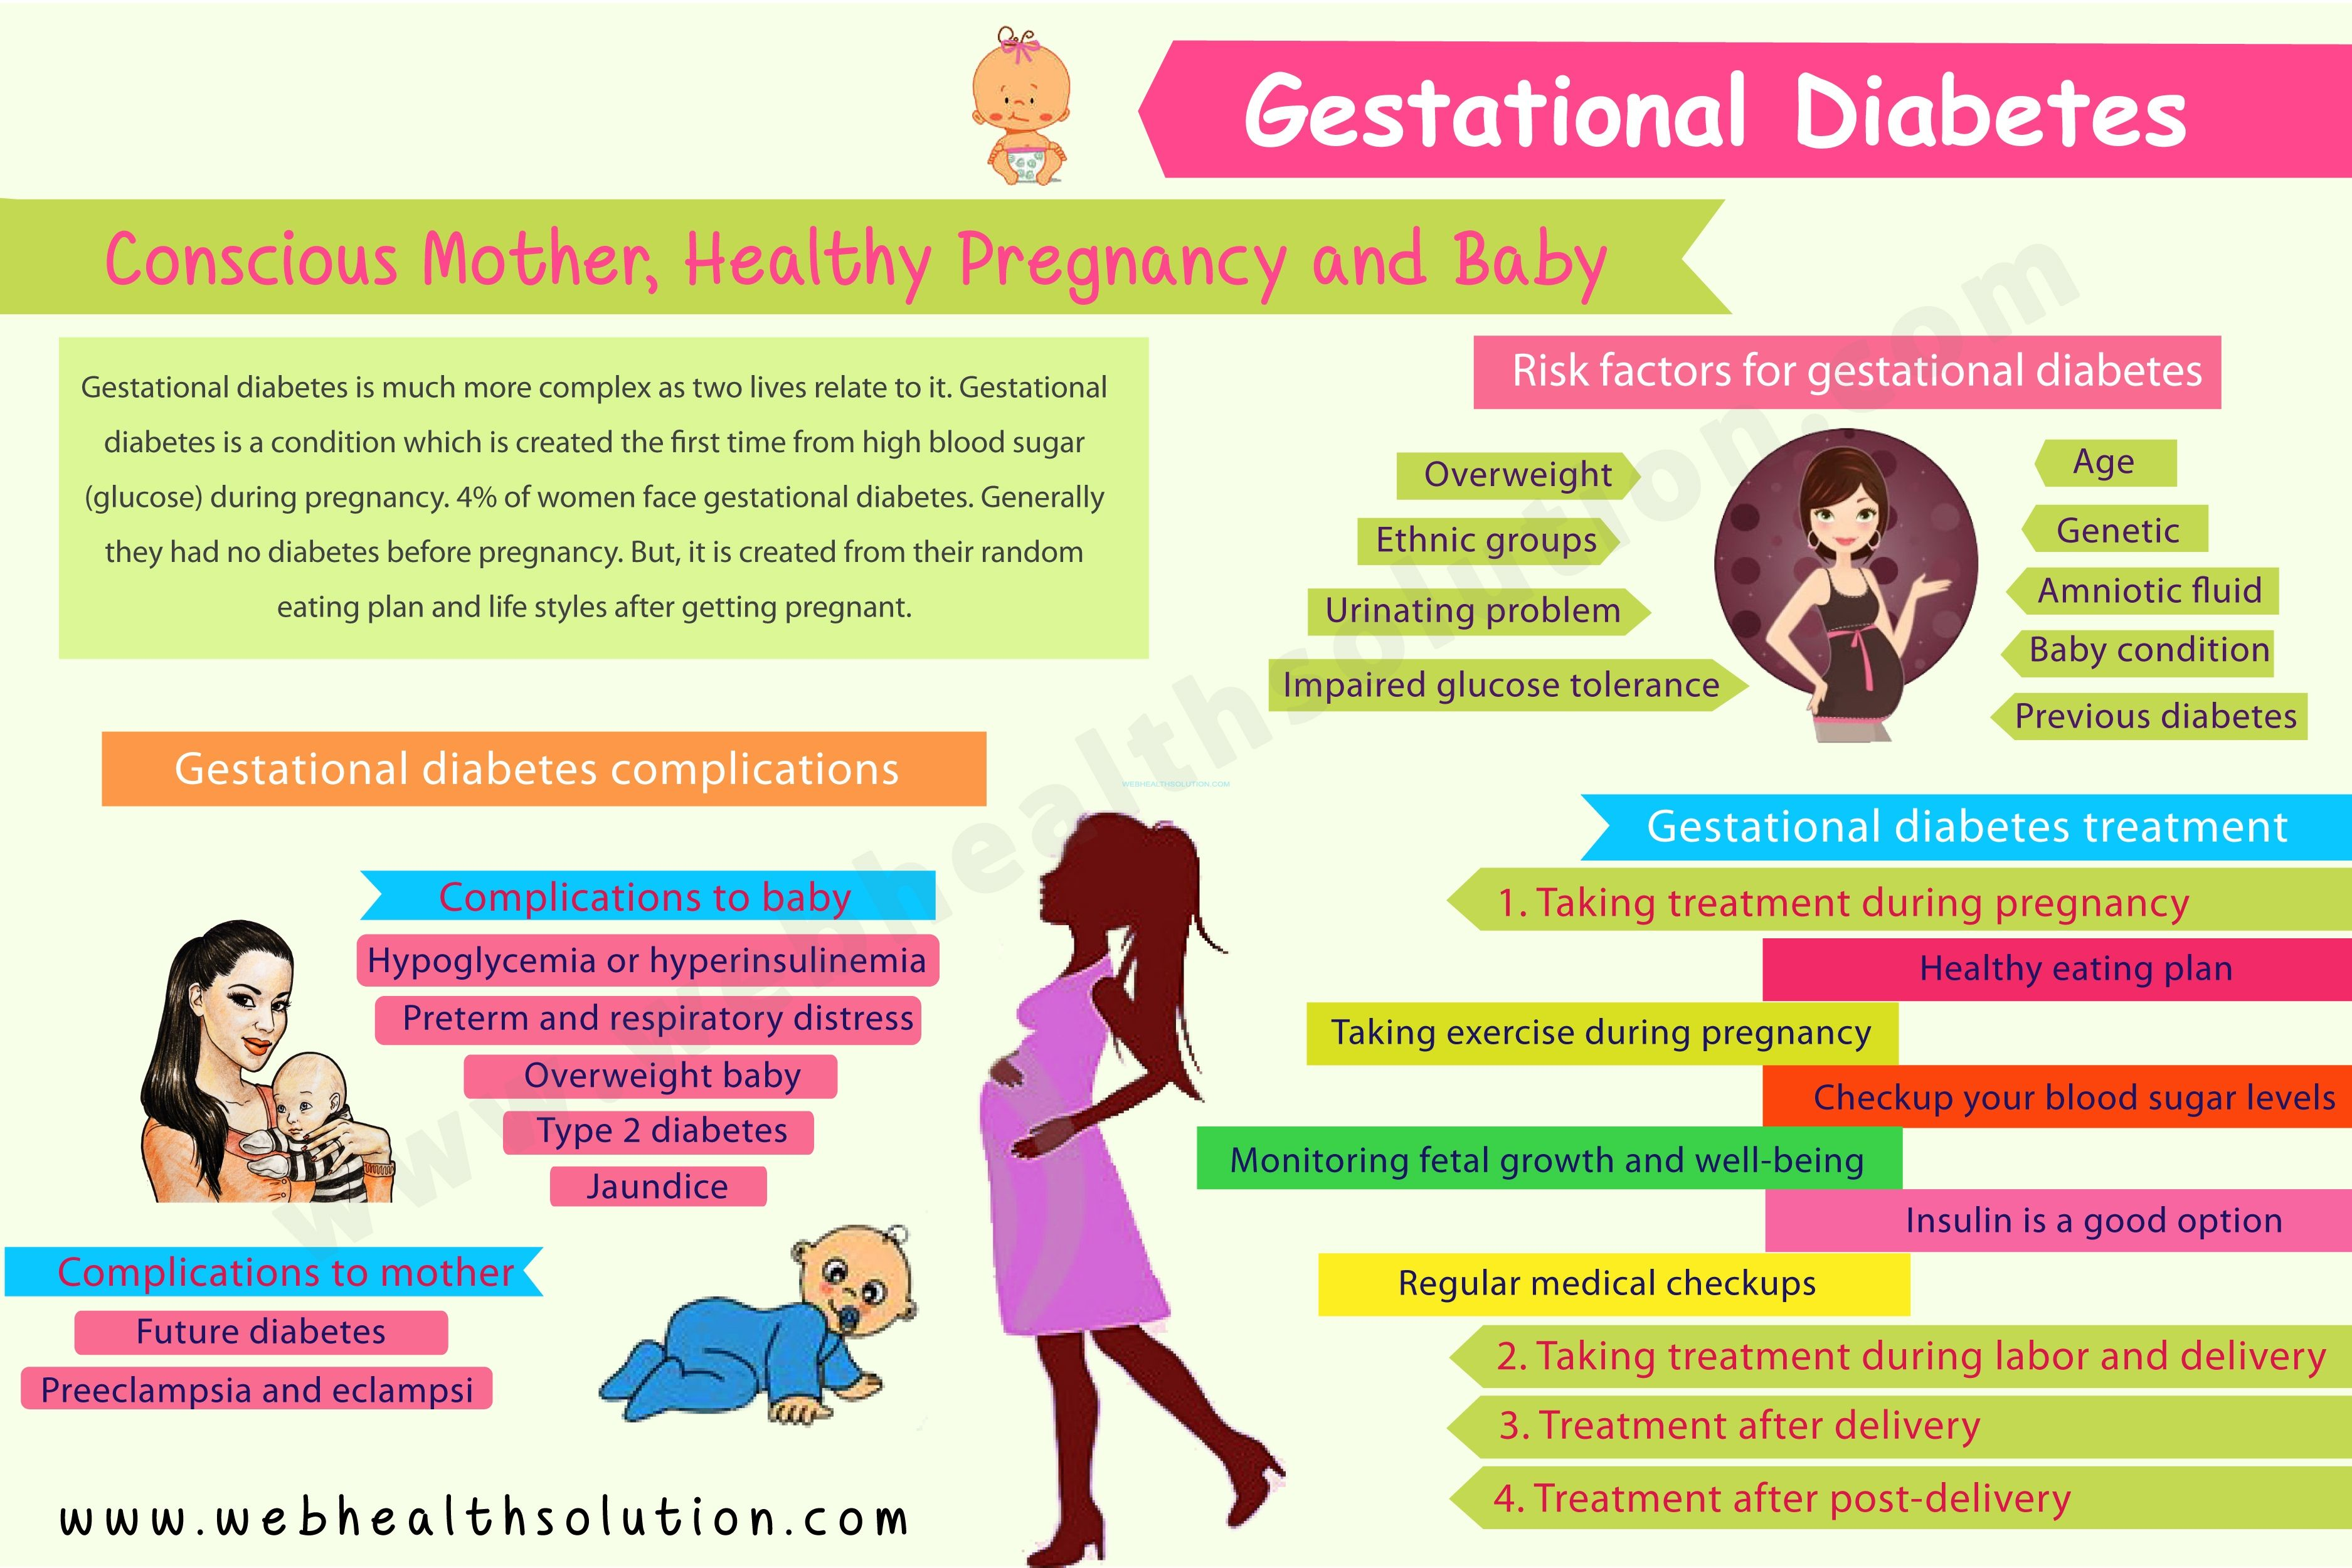 Gestational diabetes is a big tension. But, healthy eating